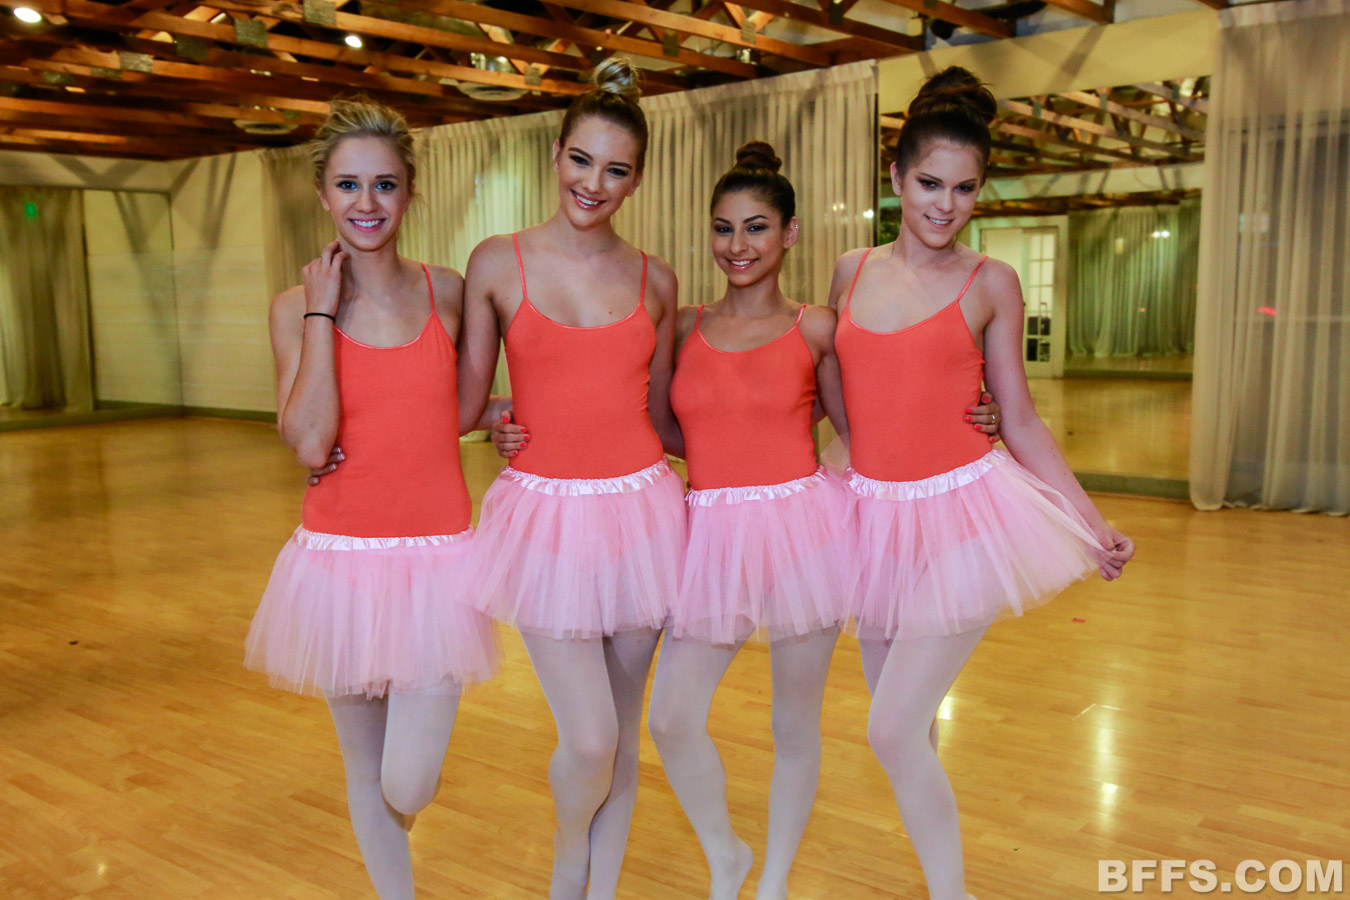 Lesbian teen ballerinas take a break from training for sex